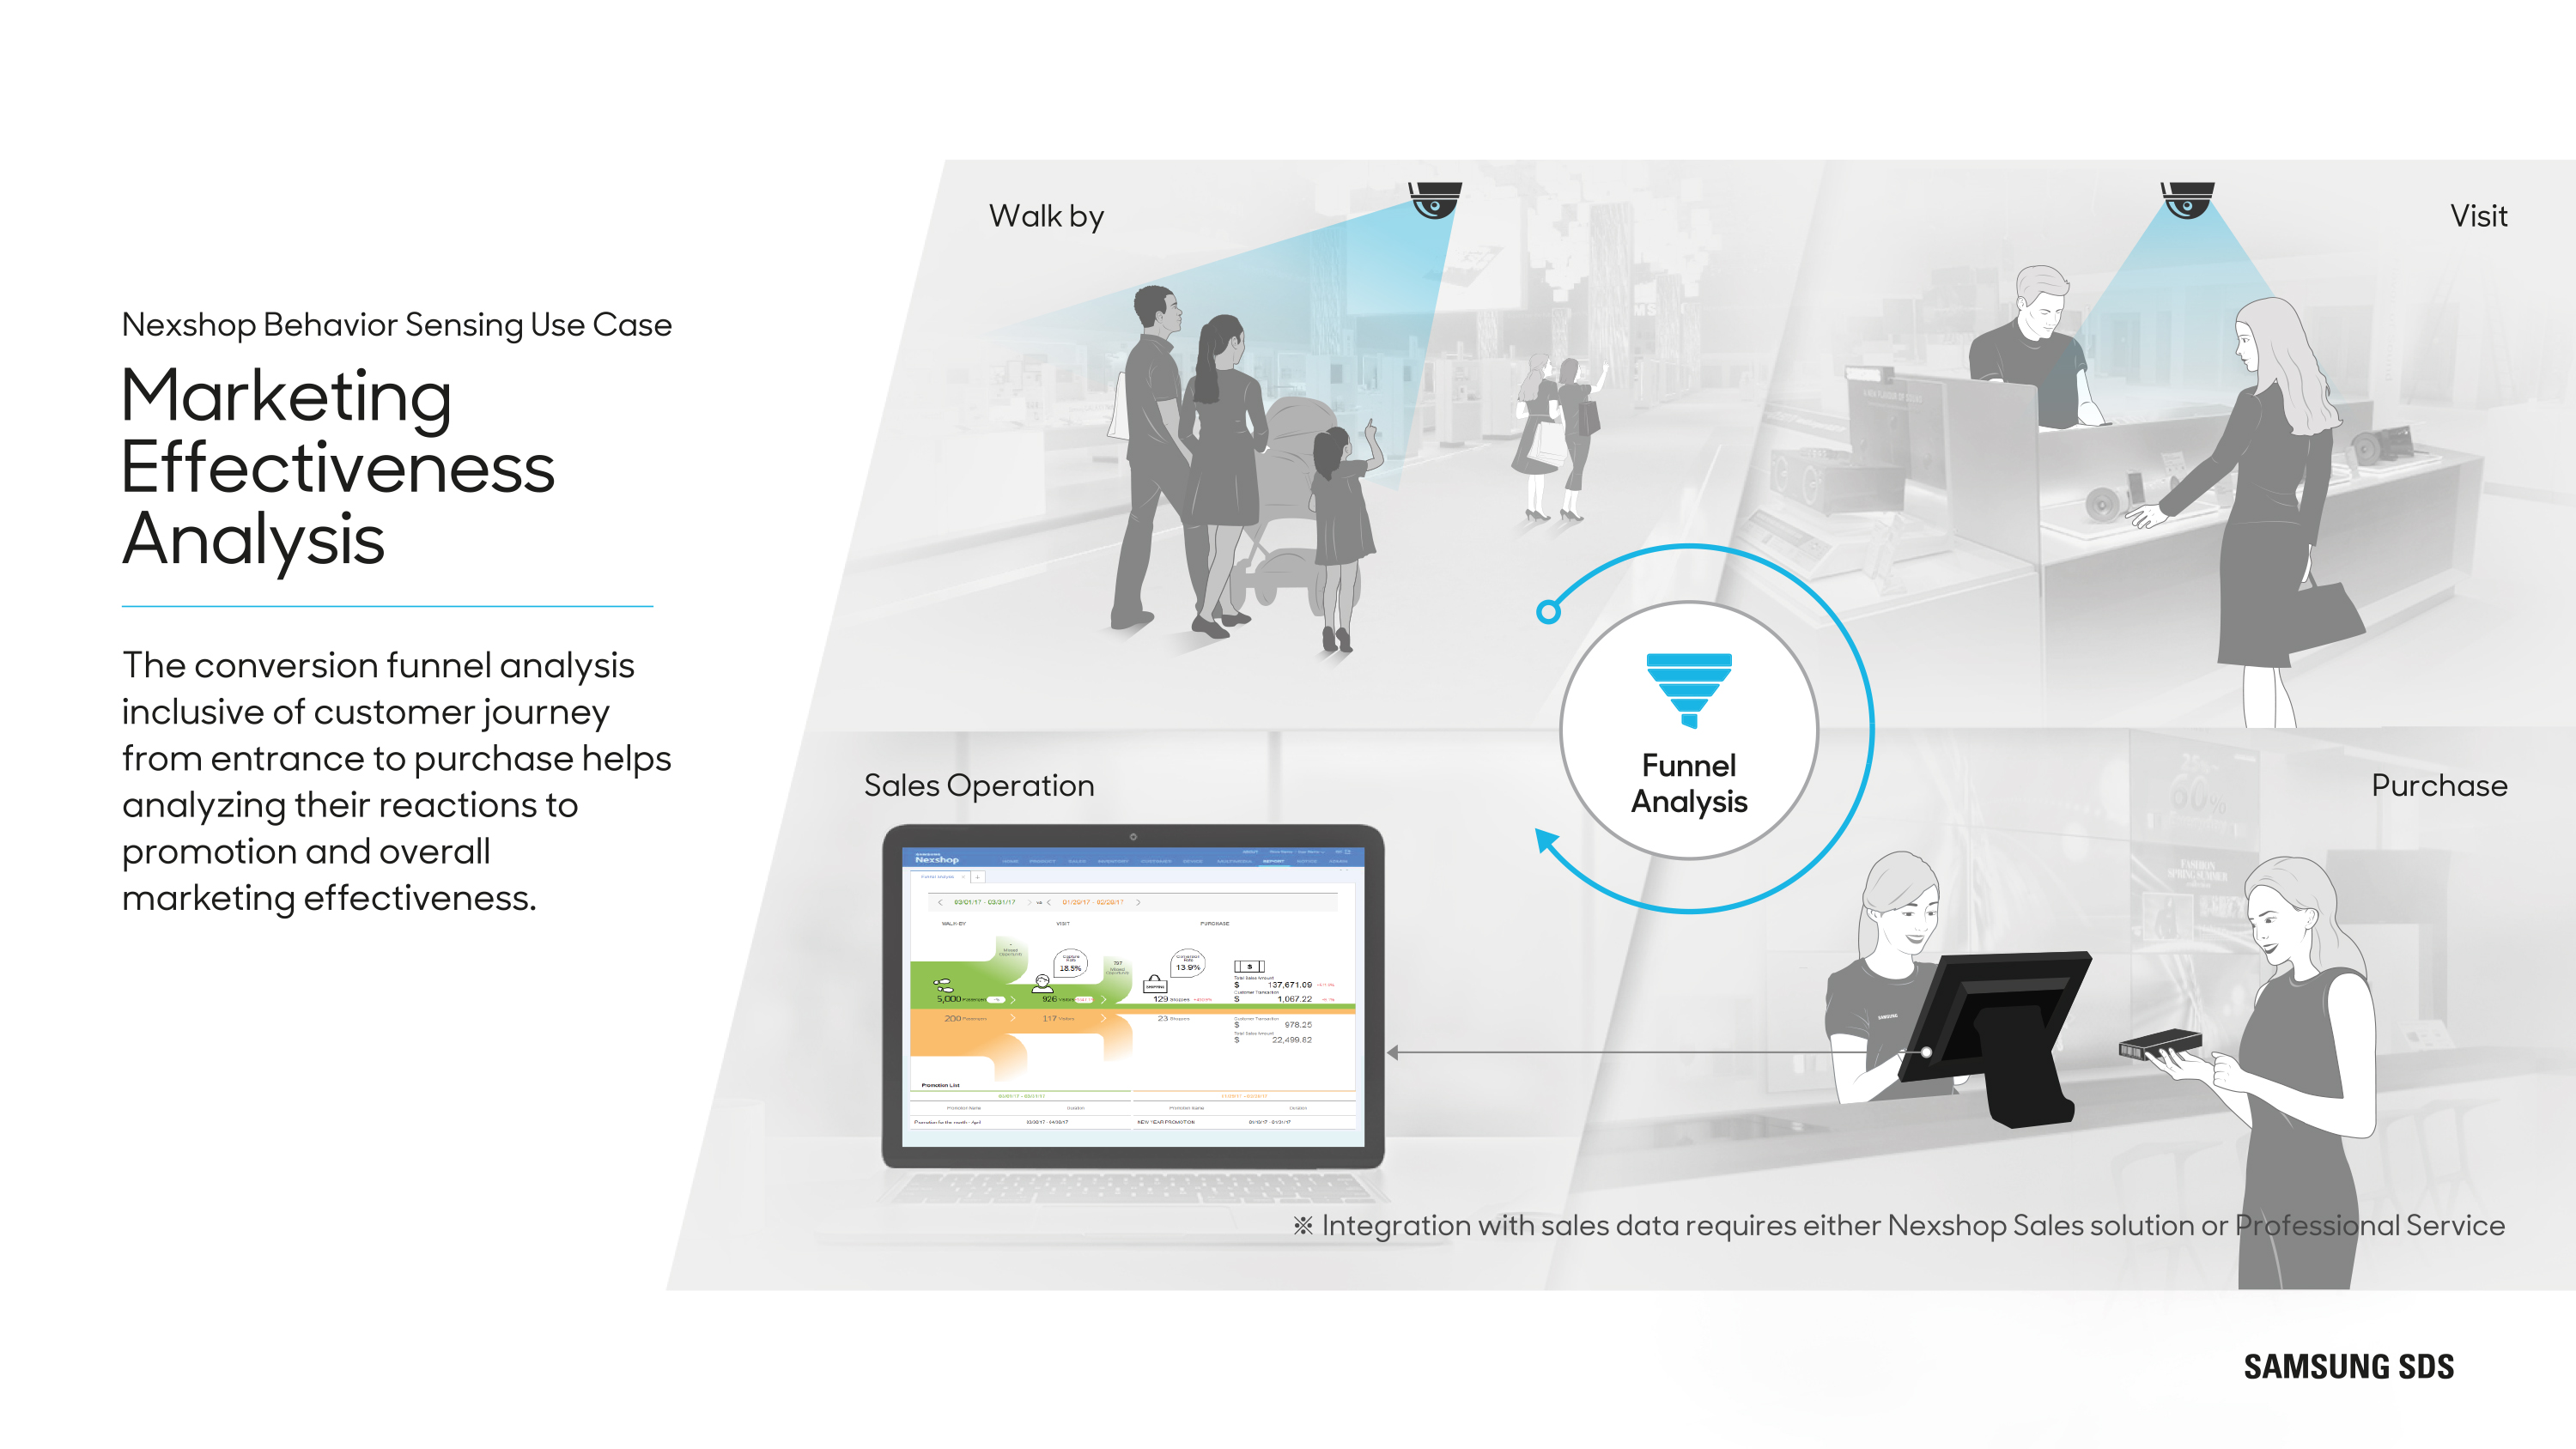 Gain a fuller understanding of how customers behave towards promotions. Comparative analytics of the conversion funnel enables retailers to see how customer traffic leads to sales.